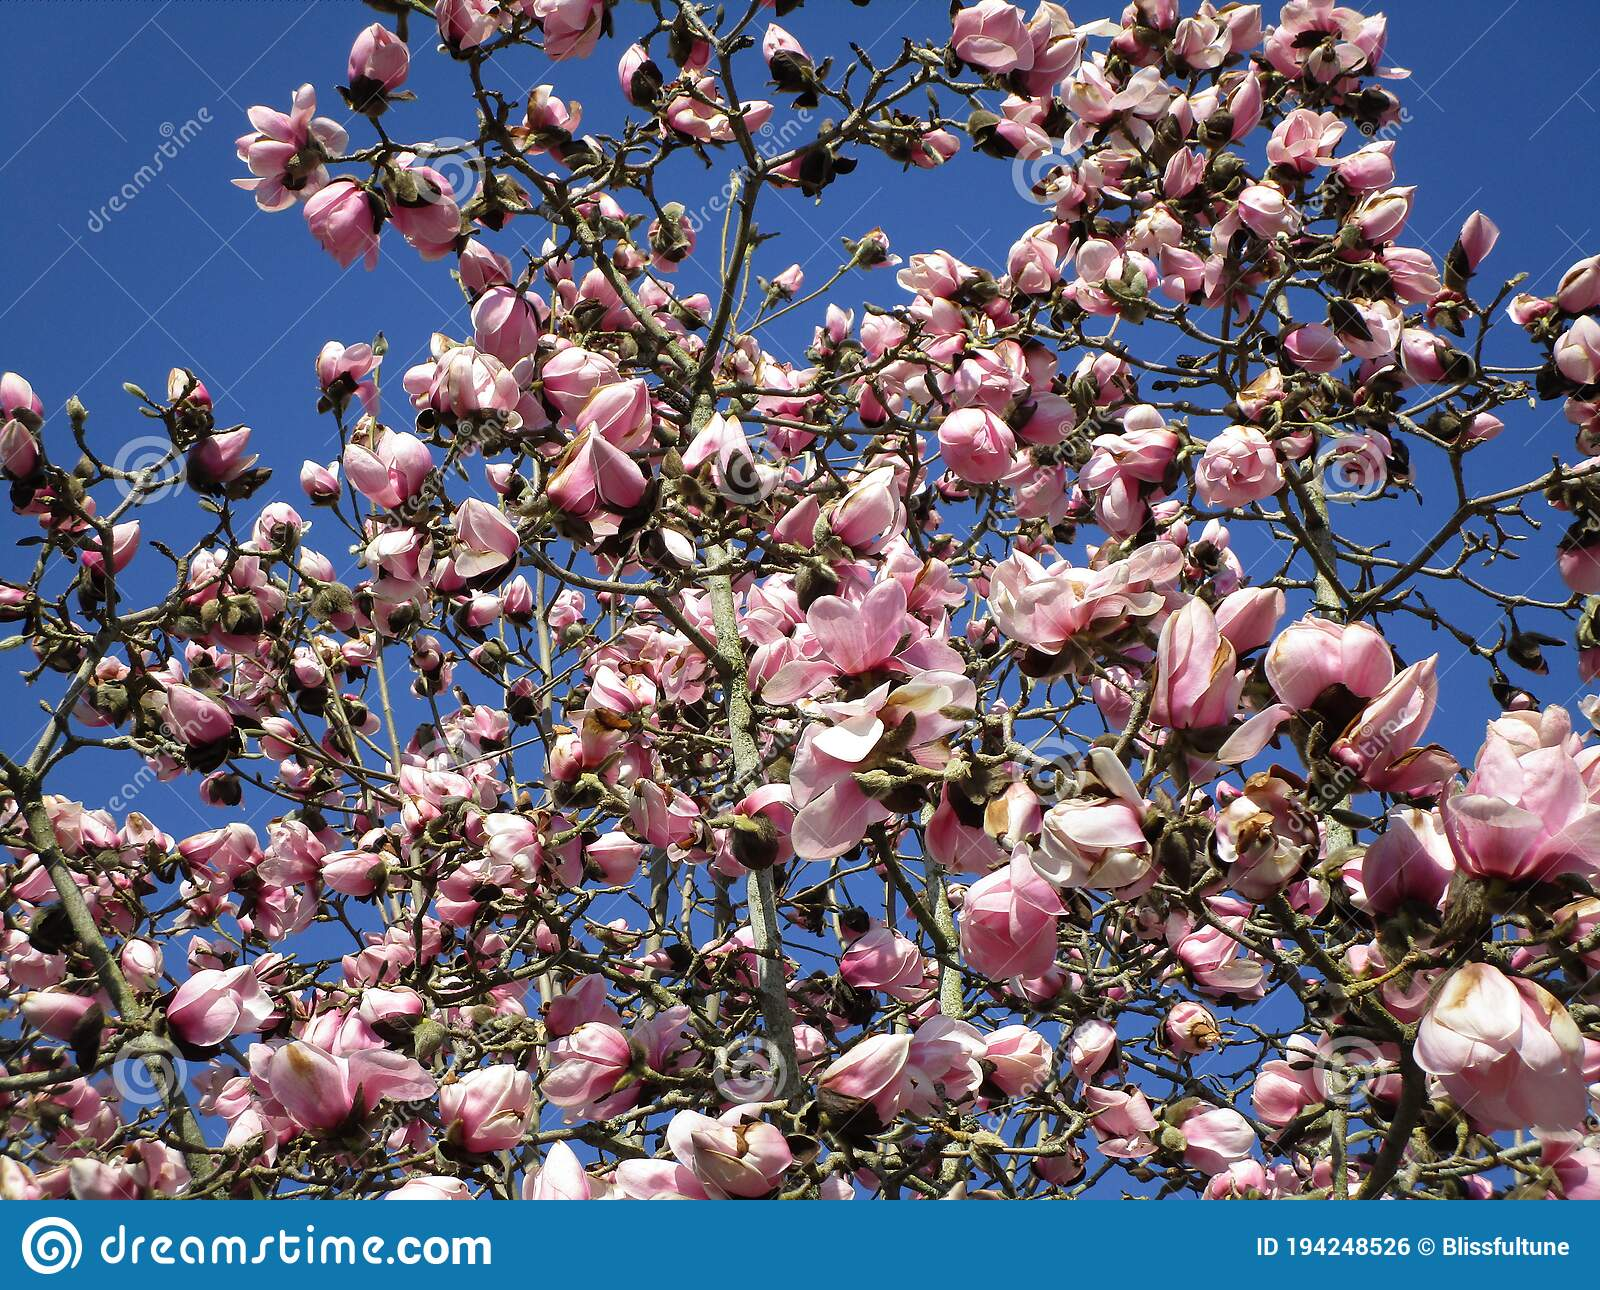 Bright Attractive Fresh Pink Saucer Magnolia Flowers In Beautiful Bloom In Spring 2020 Stock Photo Image Of Blooming Closeup 194248526